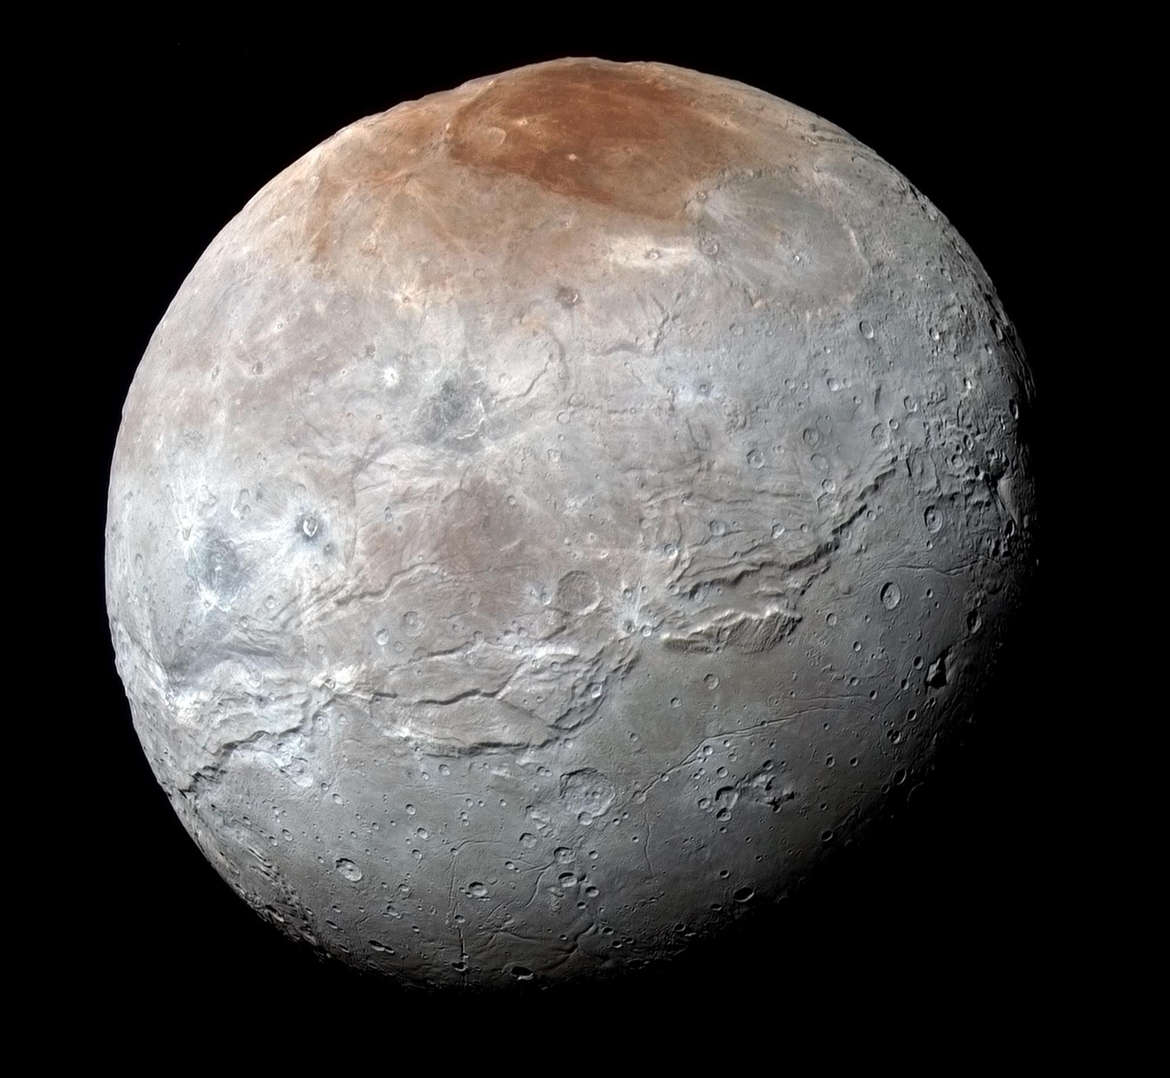 The jumbled mess that is Charon, Pluto's large moon. Credit: NASA/JHUAPL/SwRI